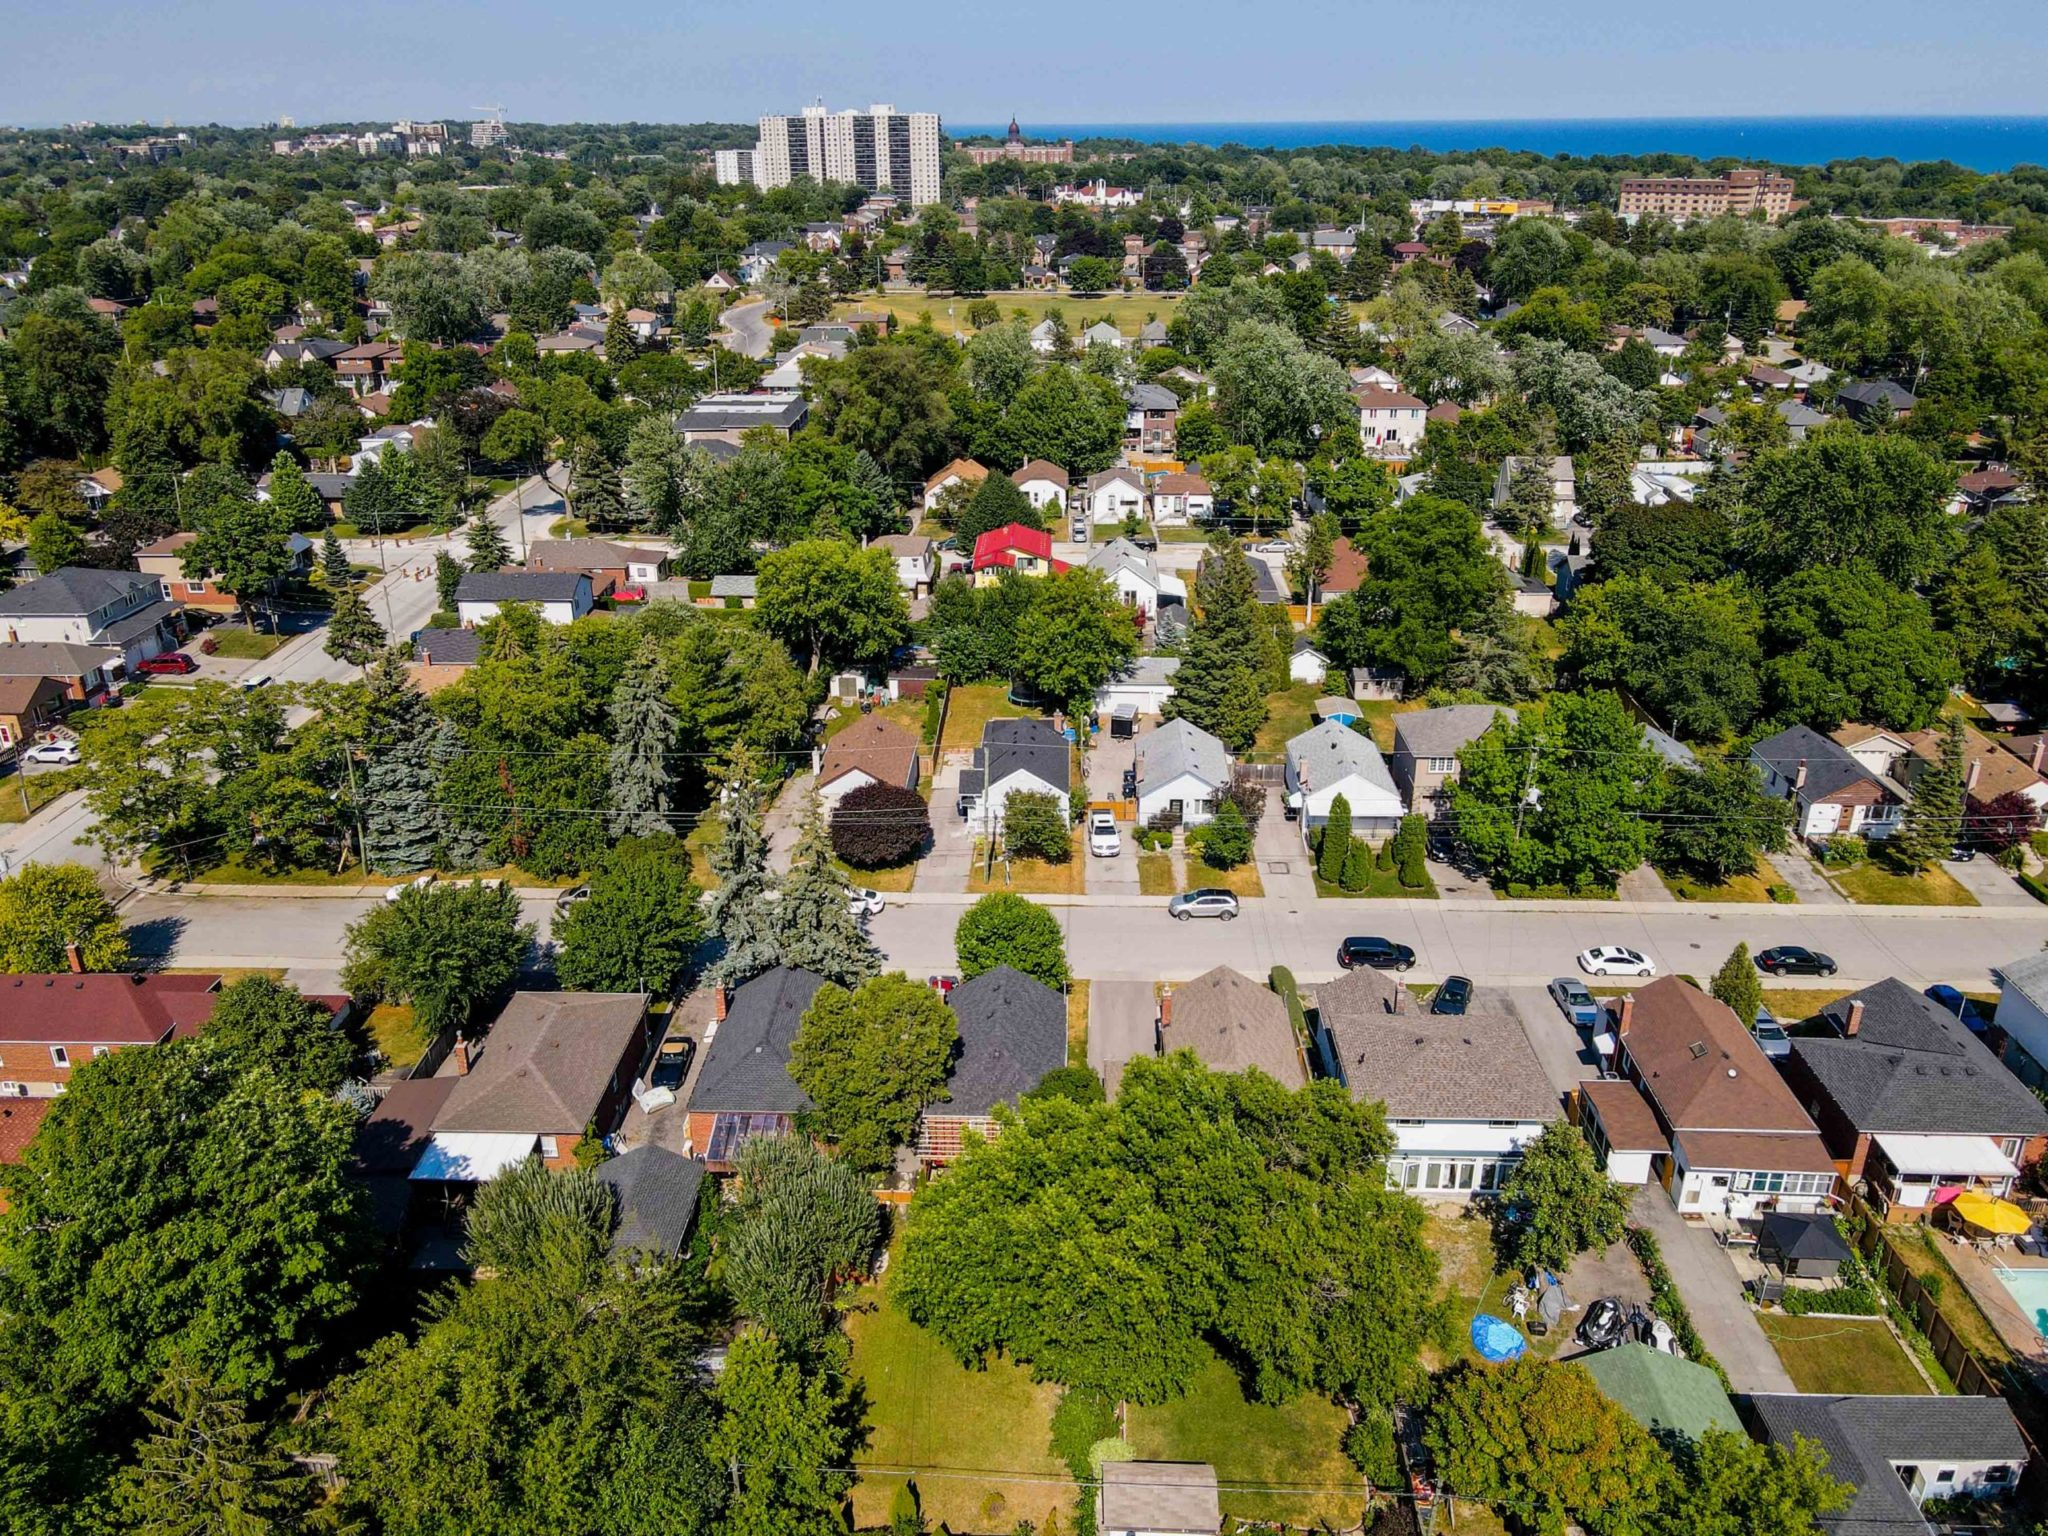 Aerial view of houses, trees and streets of Birchcliffe-Cliffside, a suburb of Scarborough, Toronto.